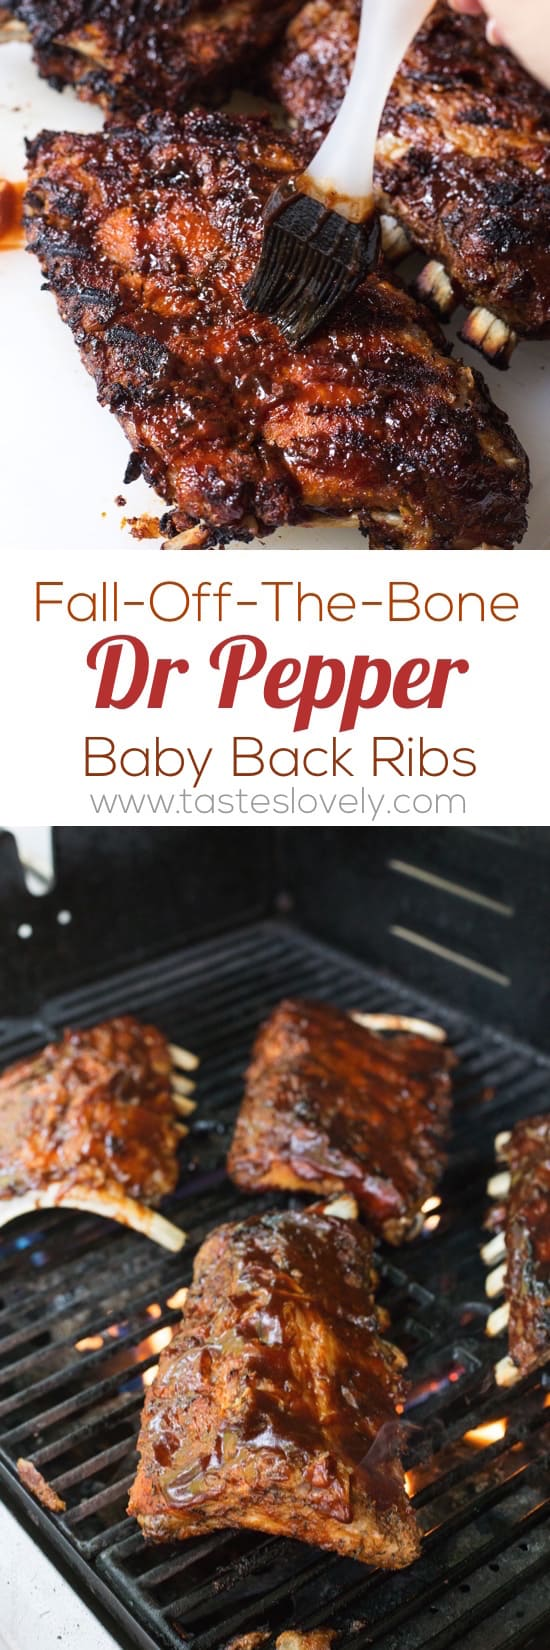 Fall-off-the-bone tender Dr Pepper Baby Back Ribs - the best ribs you'll ever have!